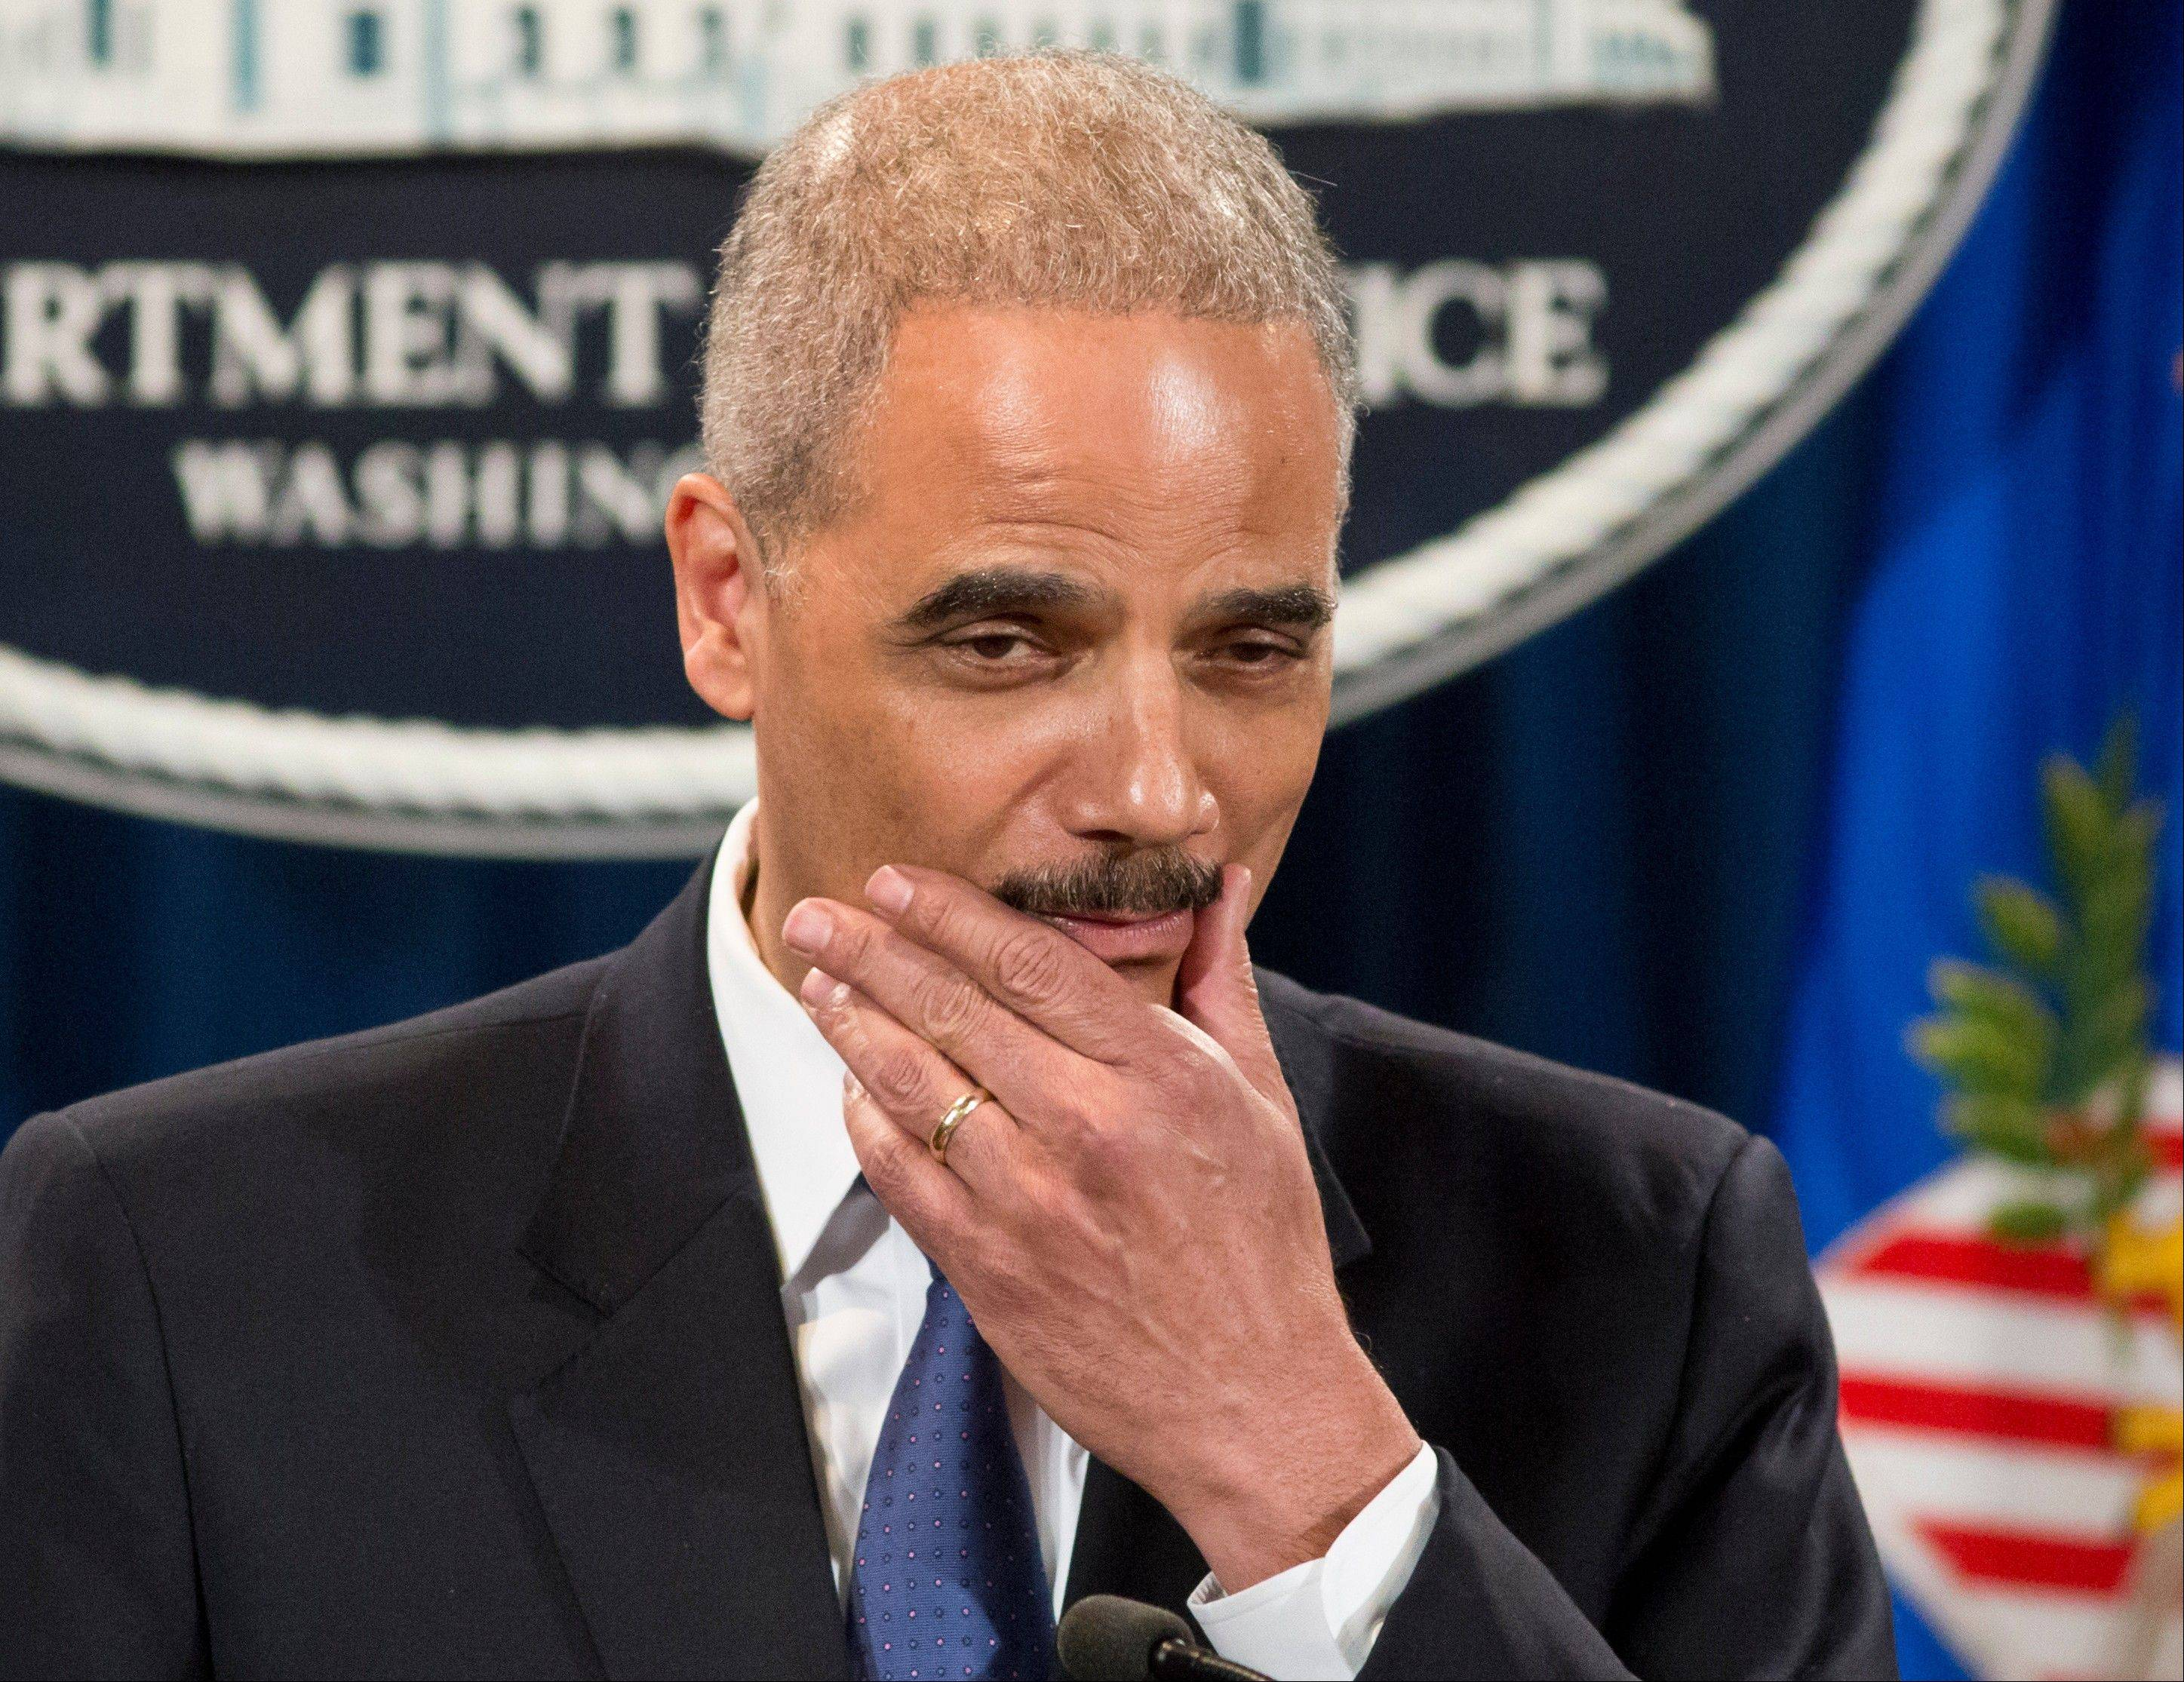 Attorney General Eric Holder pauses during a news conference at the Justice Department in Washington Tuesday. Holder said he's ordered a Justice Department investigation into the Internal Revenue Service's targeting of conservative groups for extra tax scrutiny.